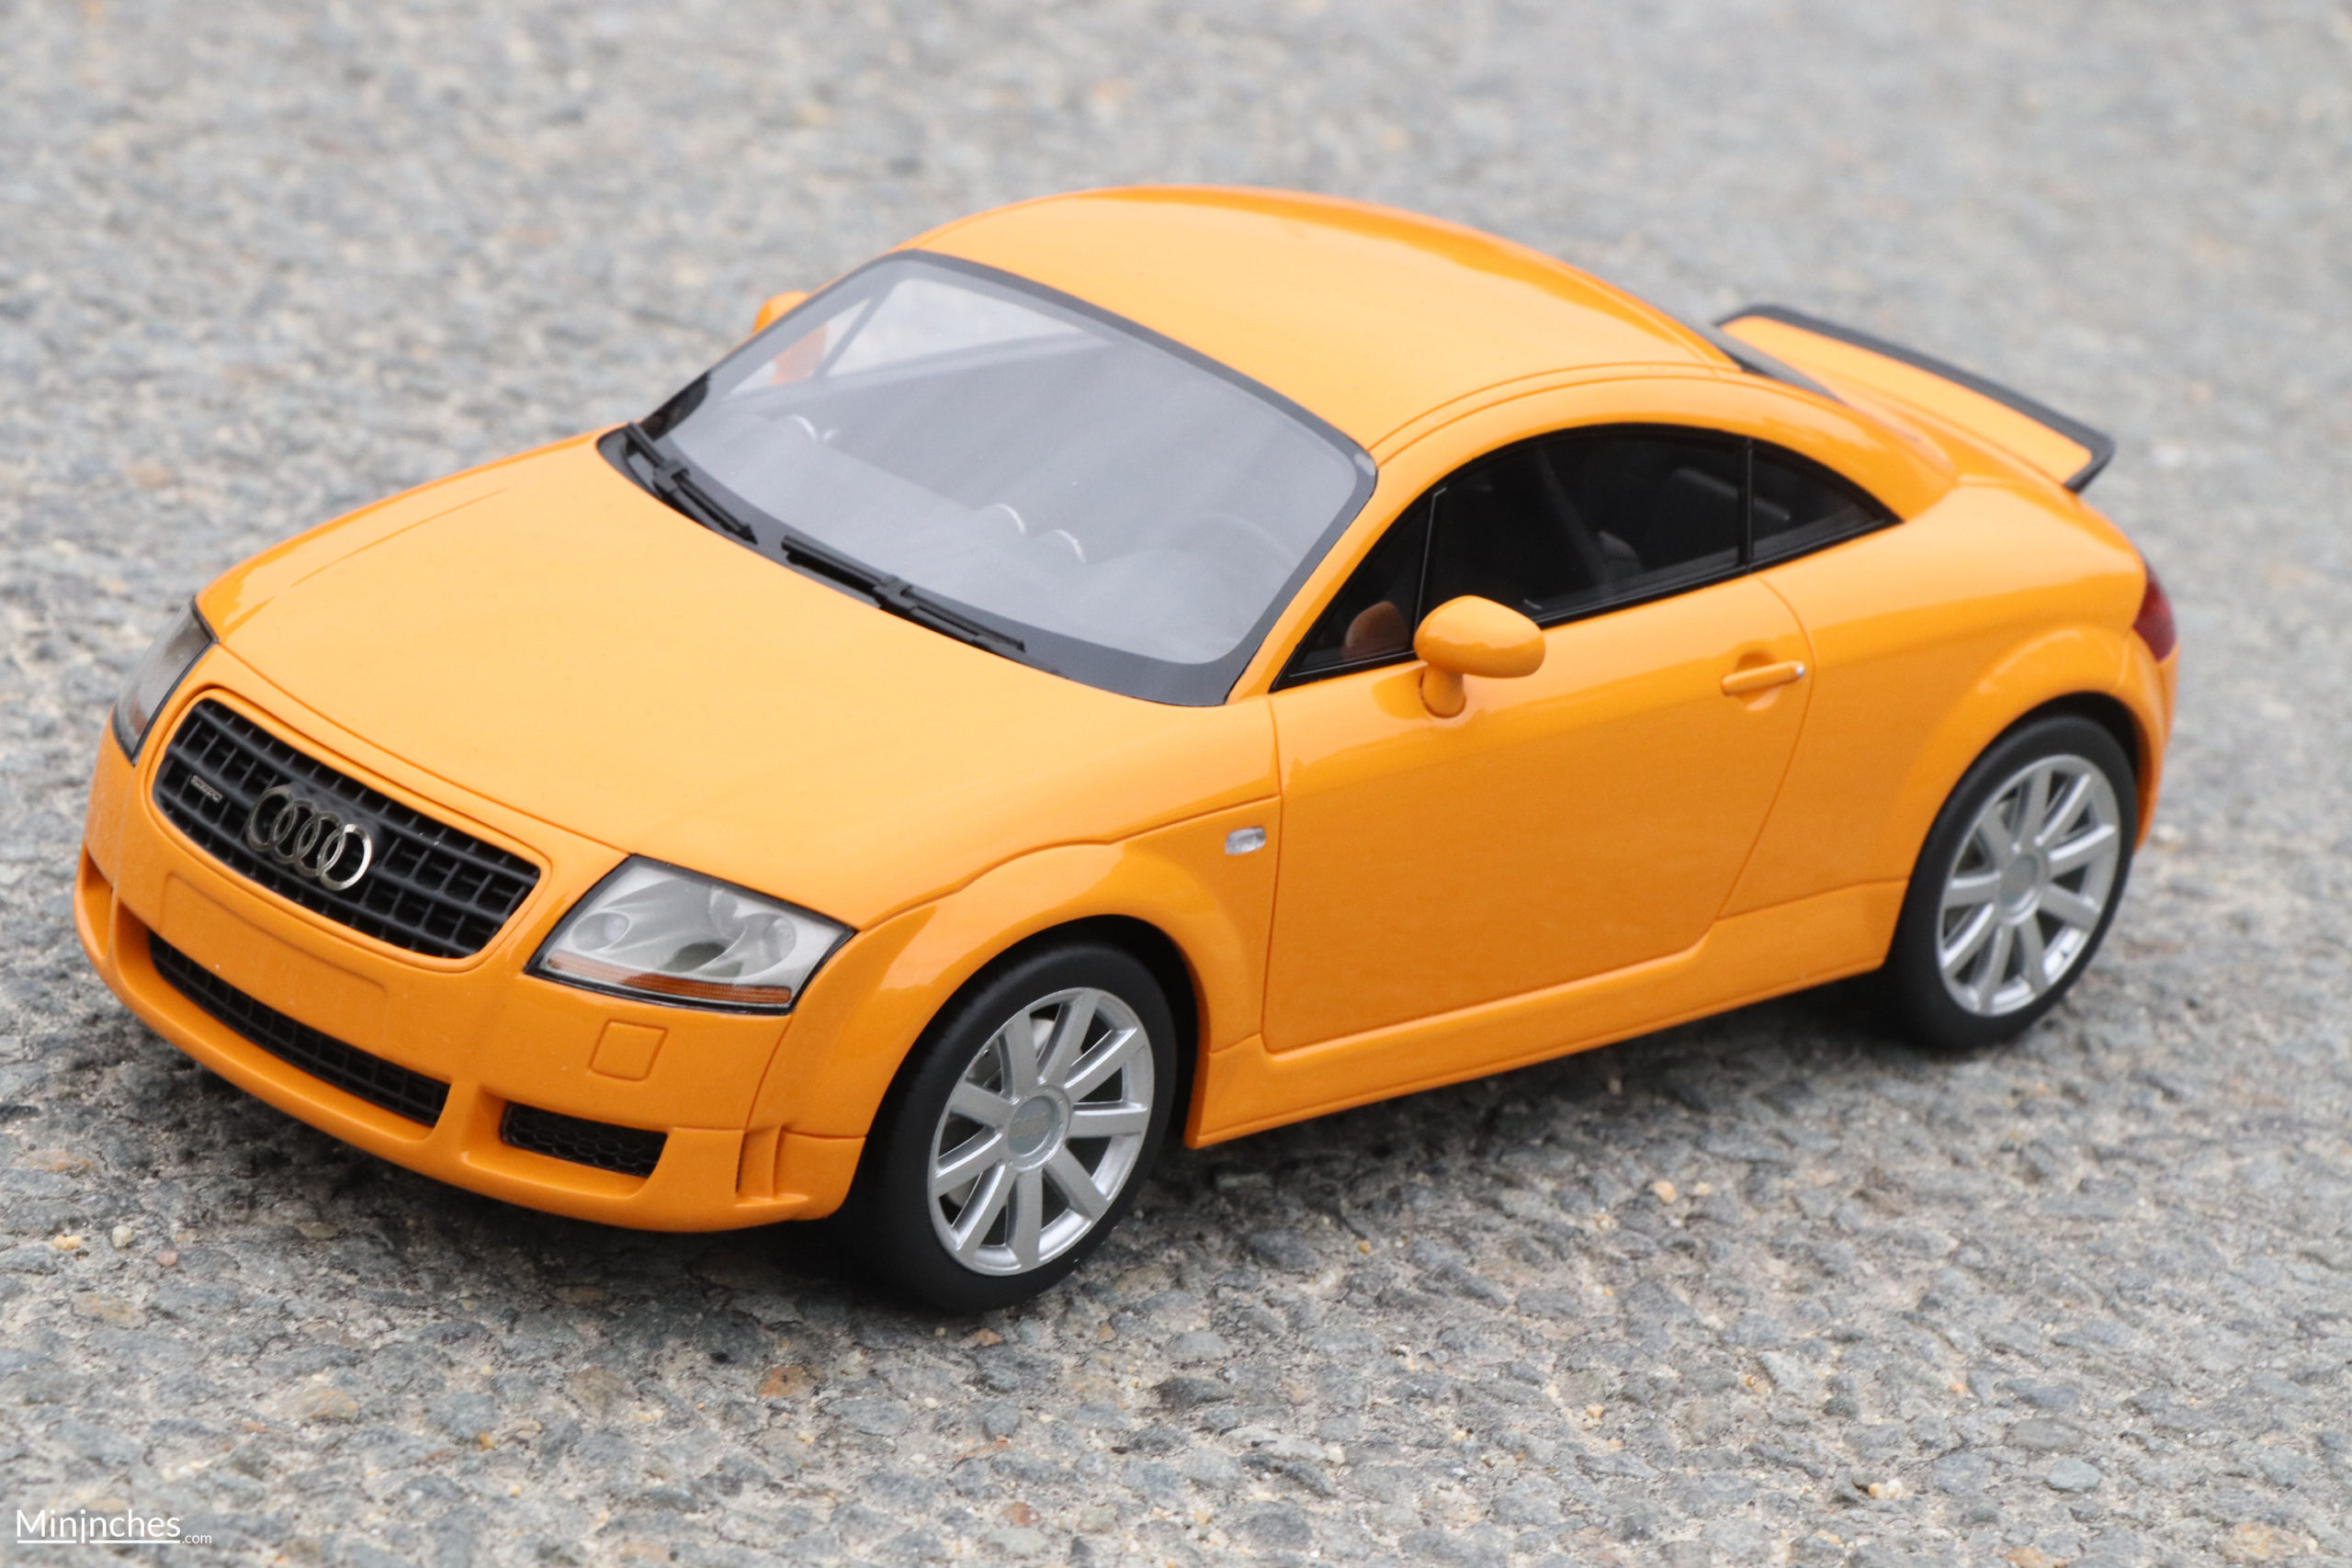 Audi TT 3.2 Mk1 DNA Collectibles